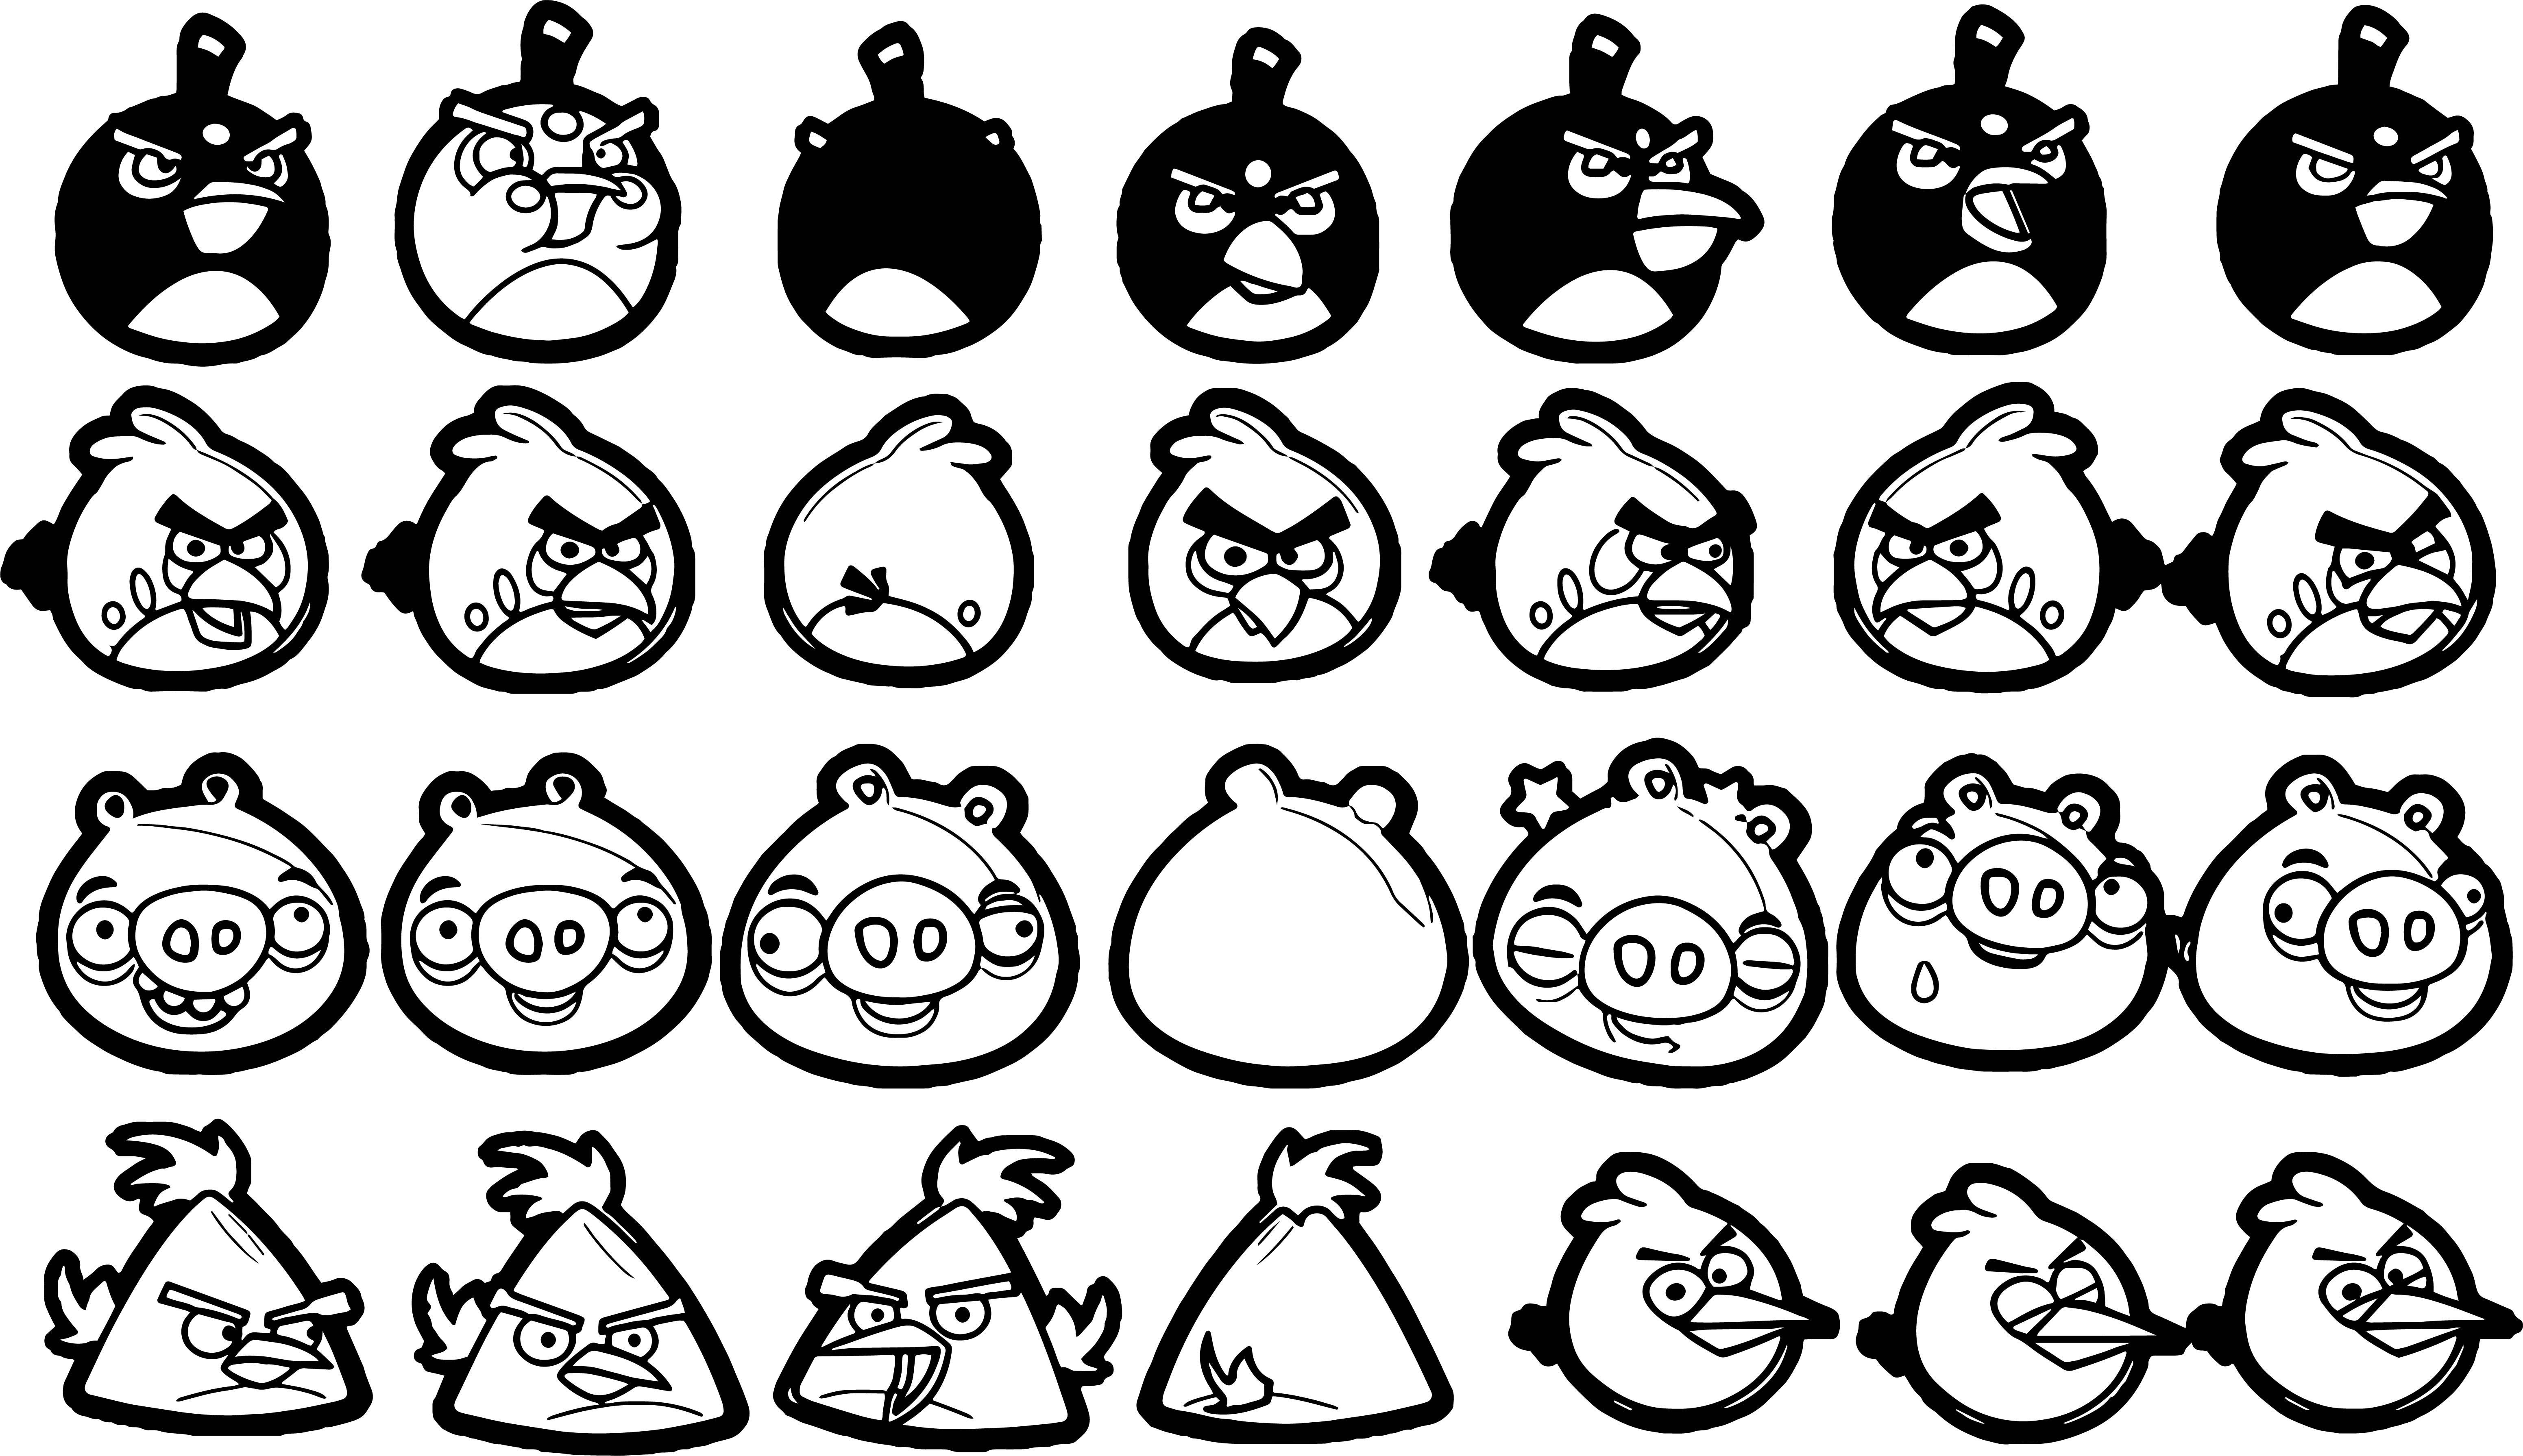 Cool Angry Bird Characters Coloring Page Angry Birds Characters Bird Coloring Pages Coloring Pages In 2021 Bird Coloring Pages Coloring Pages Angry Birds Characters